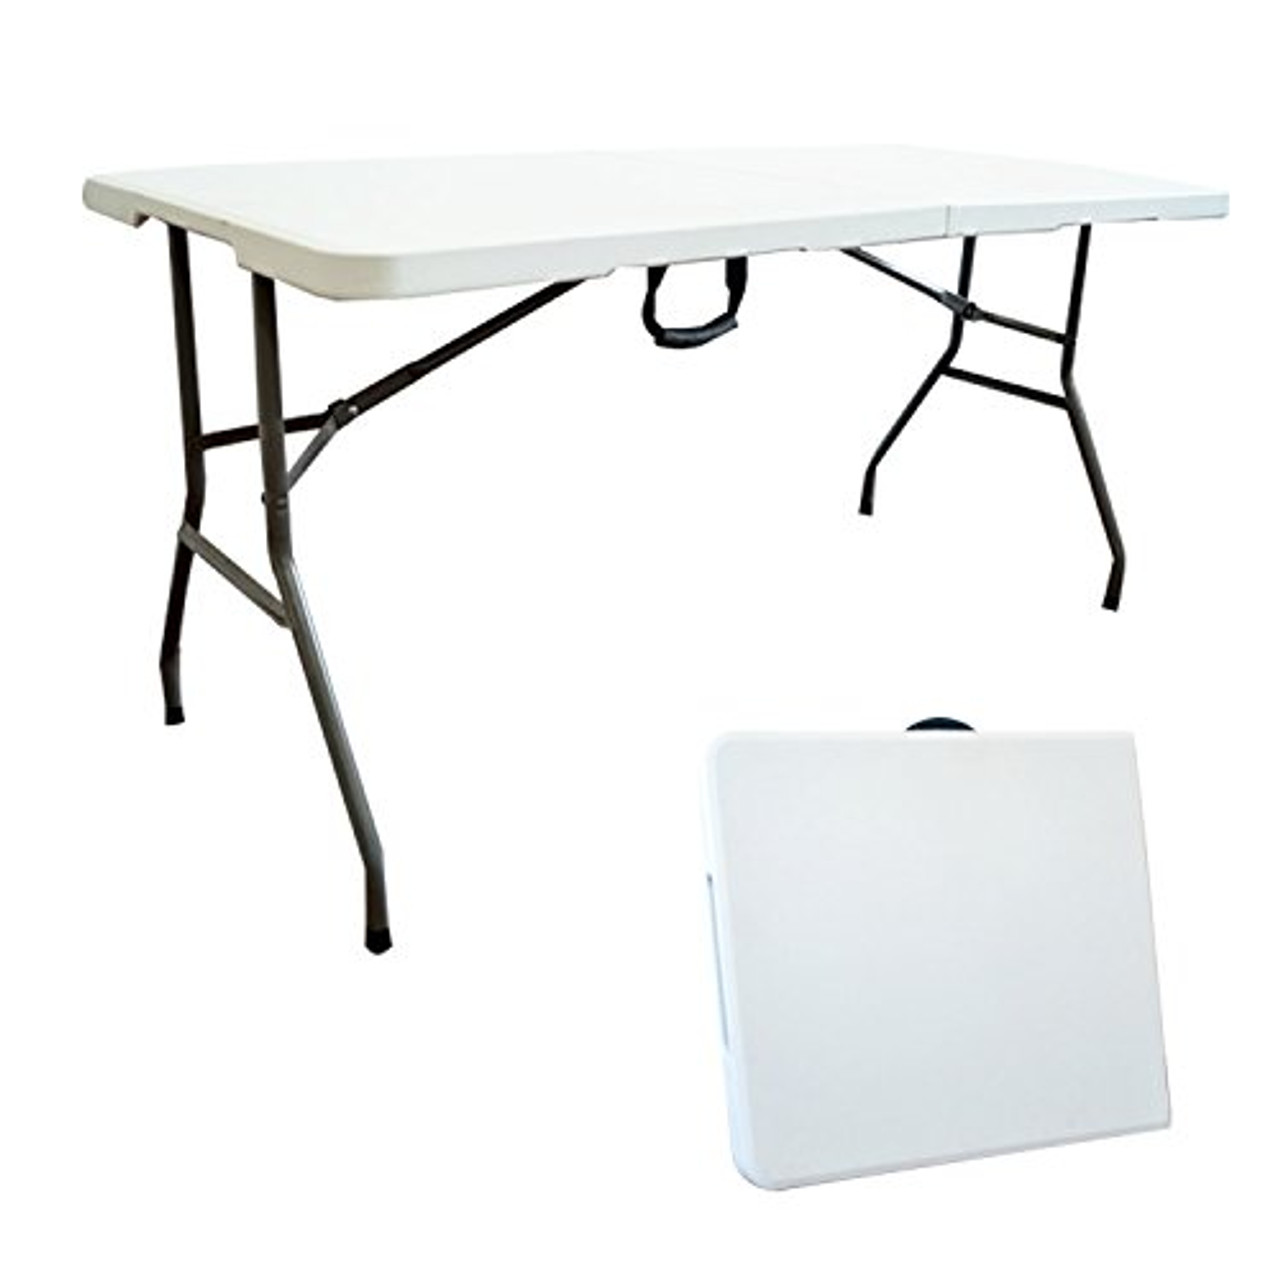 Rental - Folding 6' Table